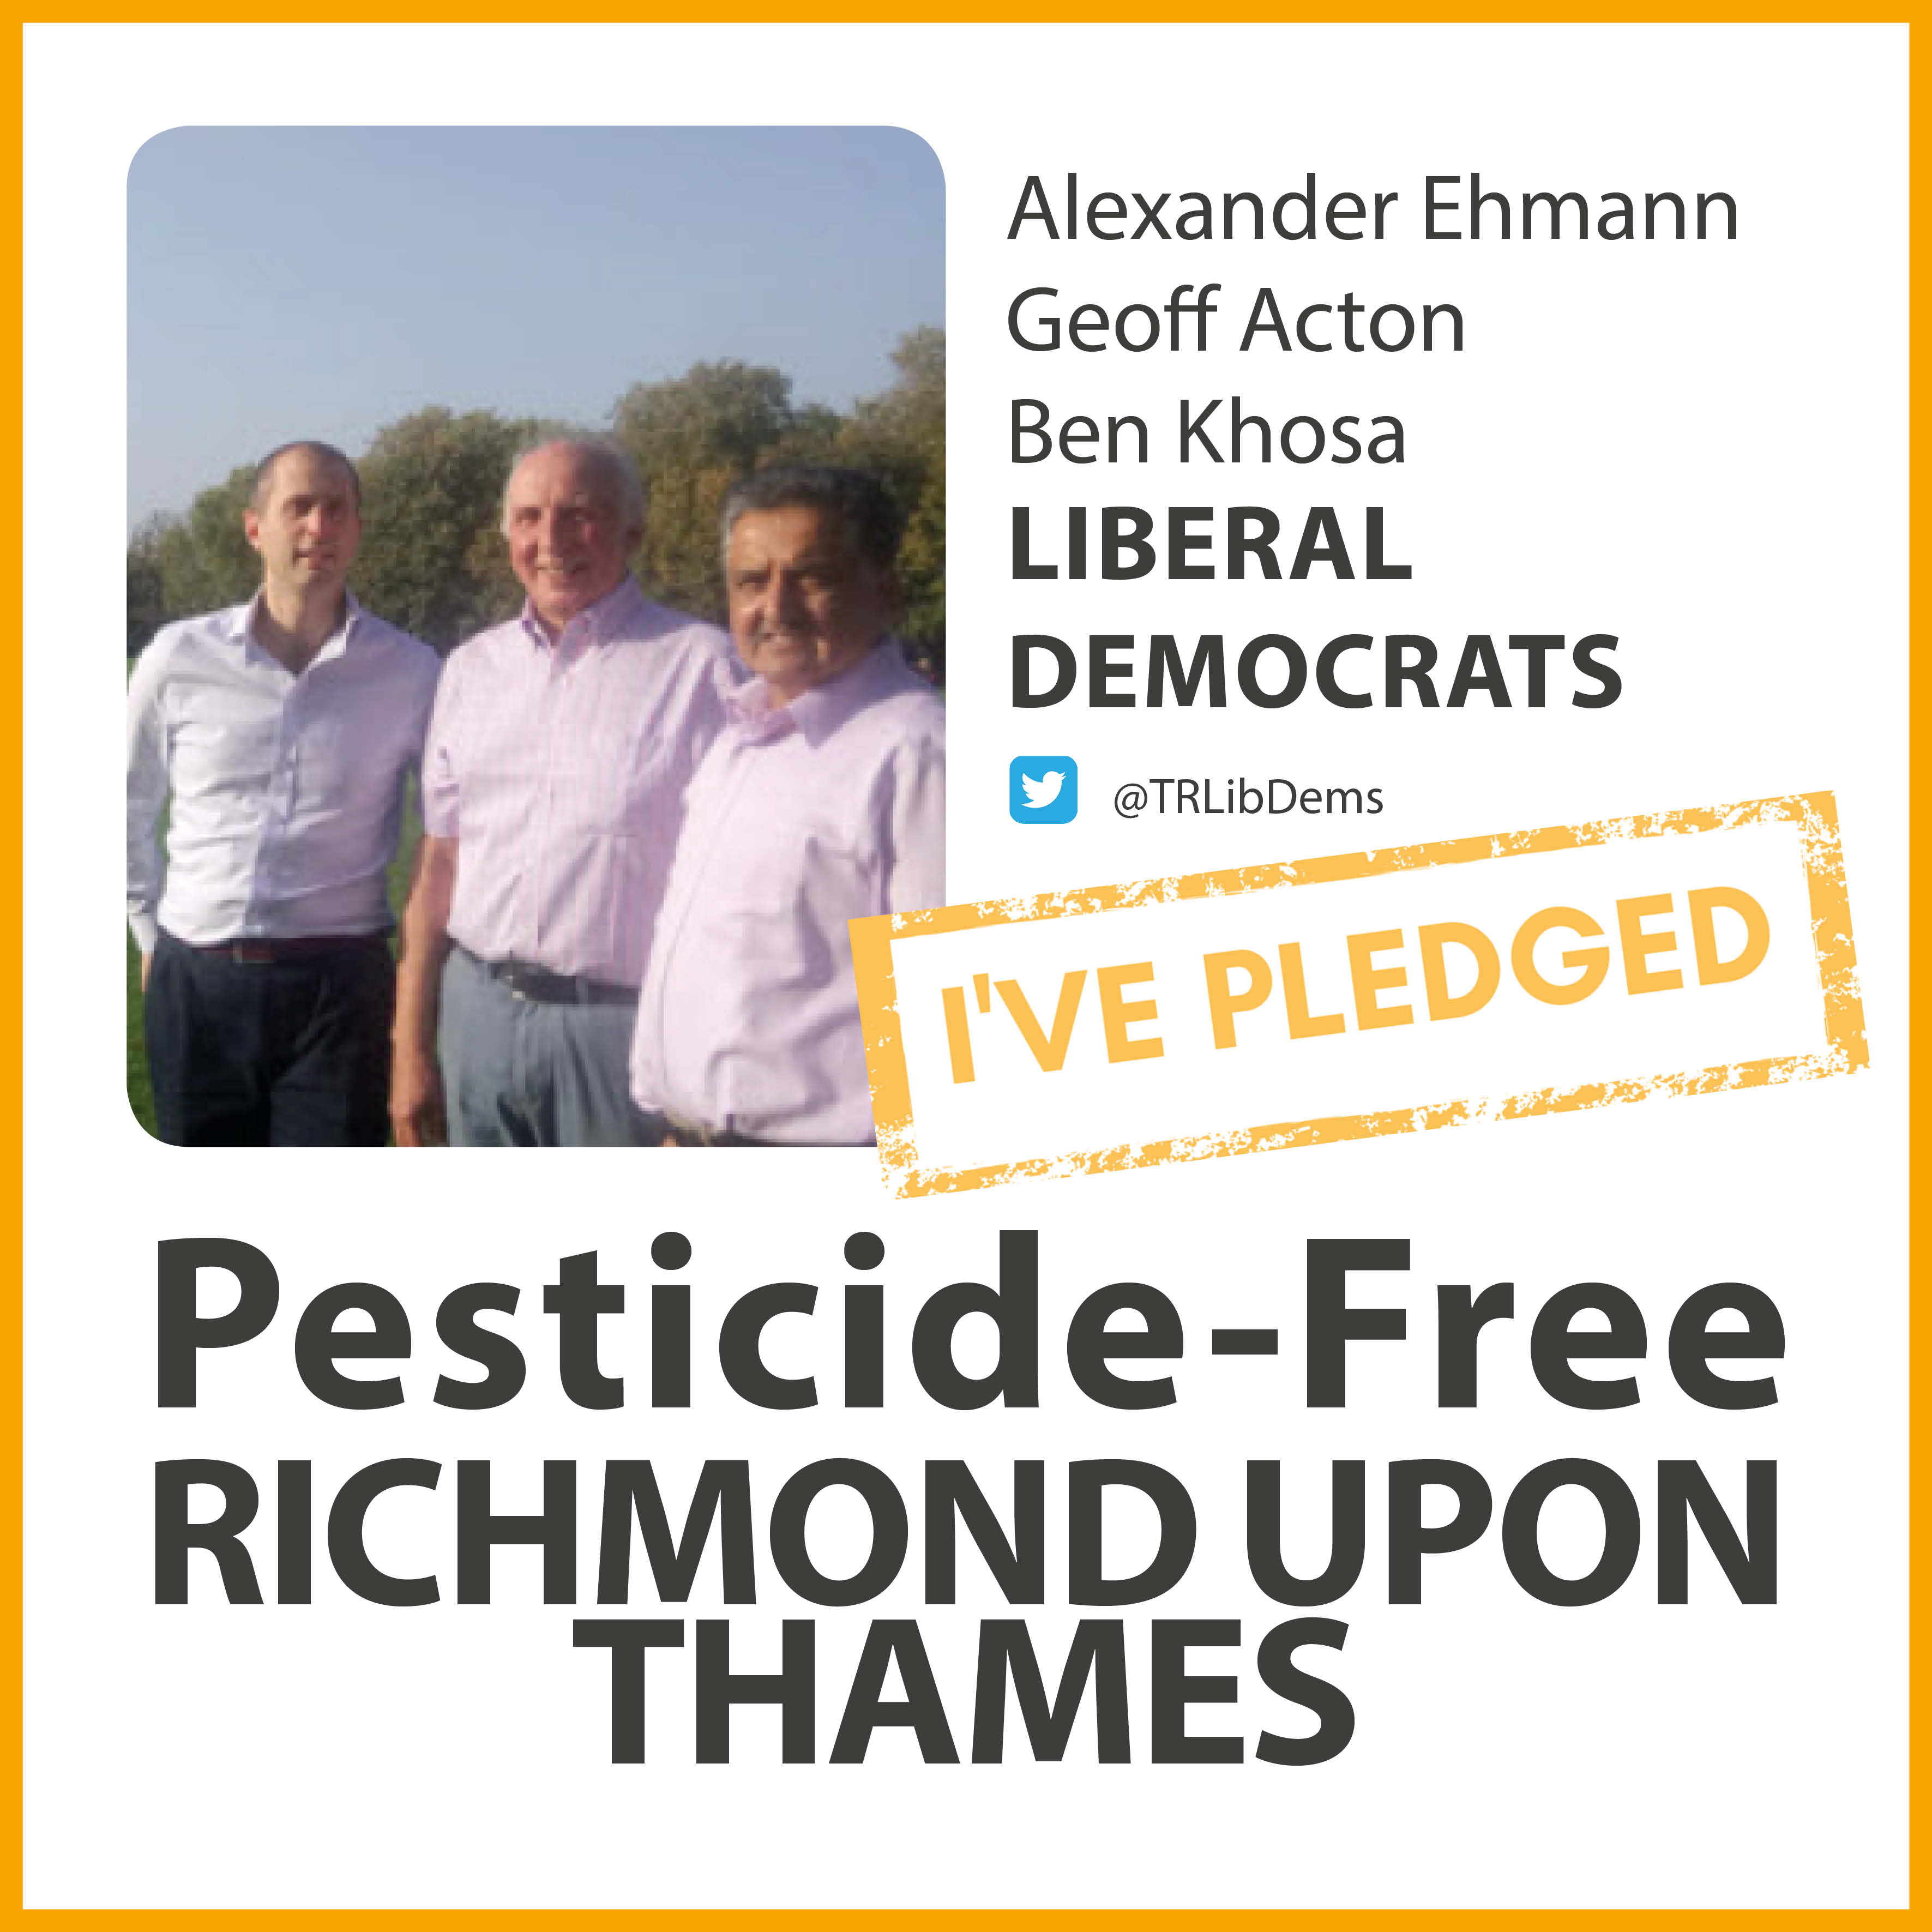 St Margarets and North Twickenham Lib Dems have taken the pesticide-free pledge